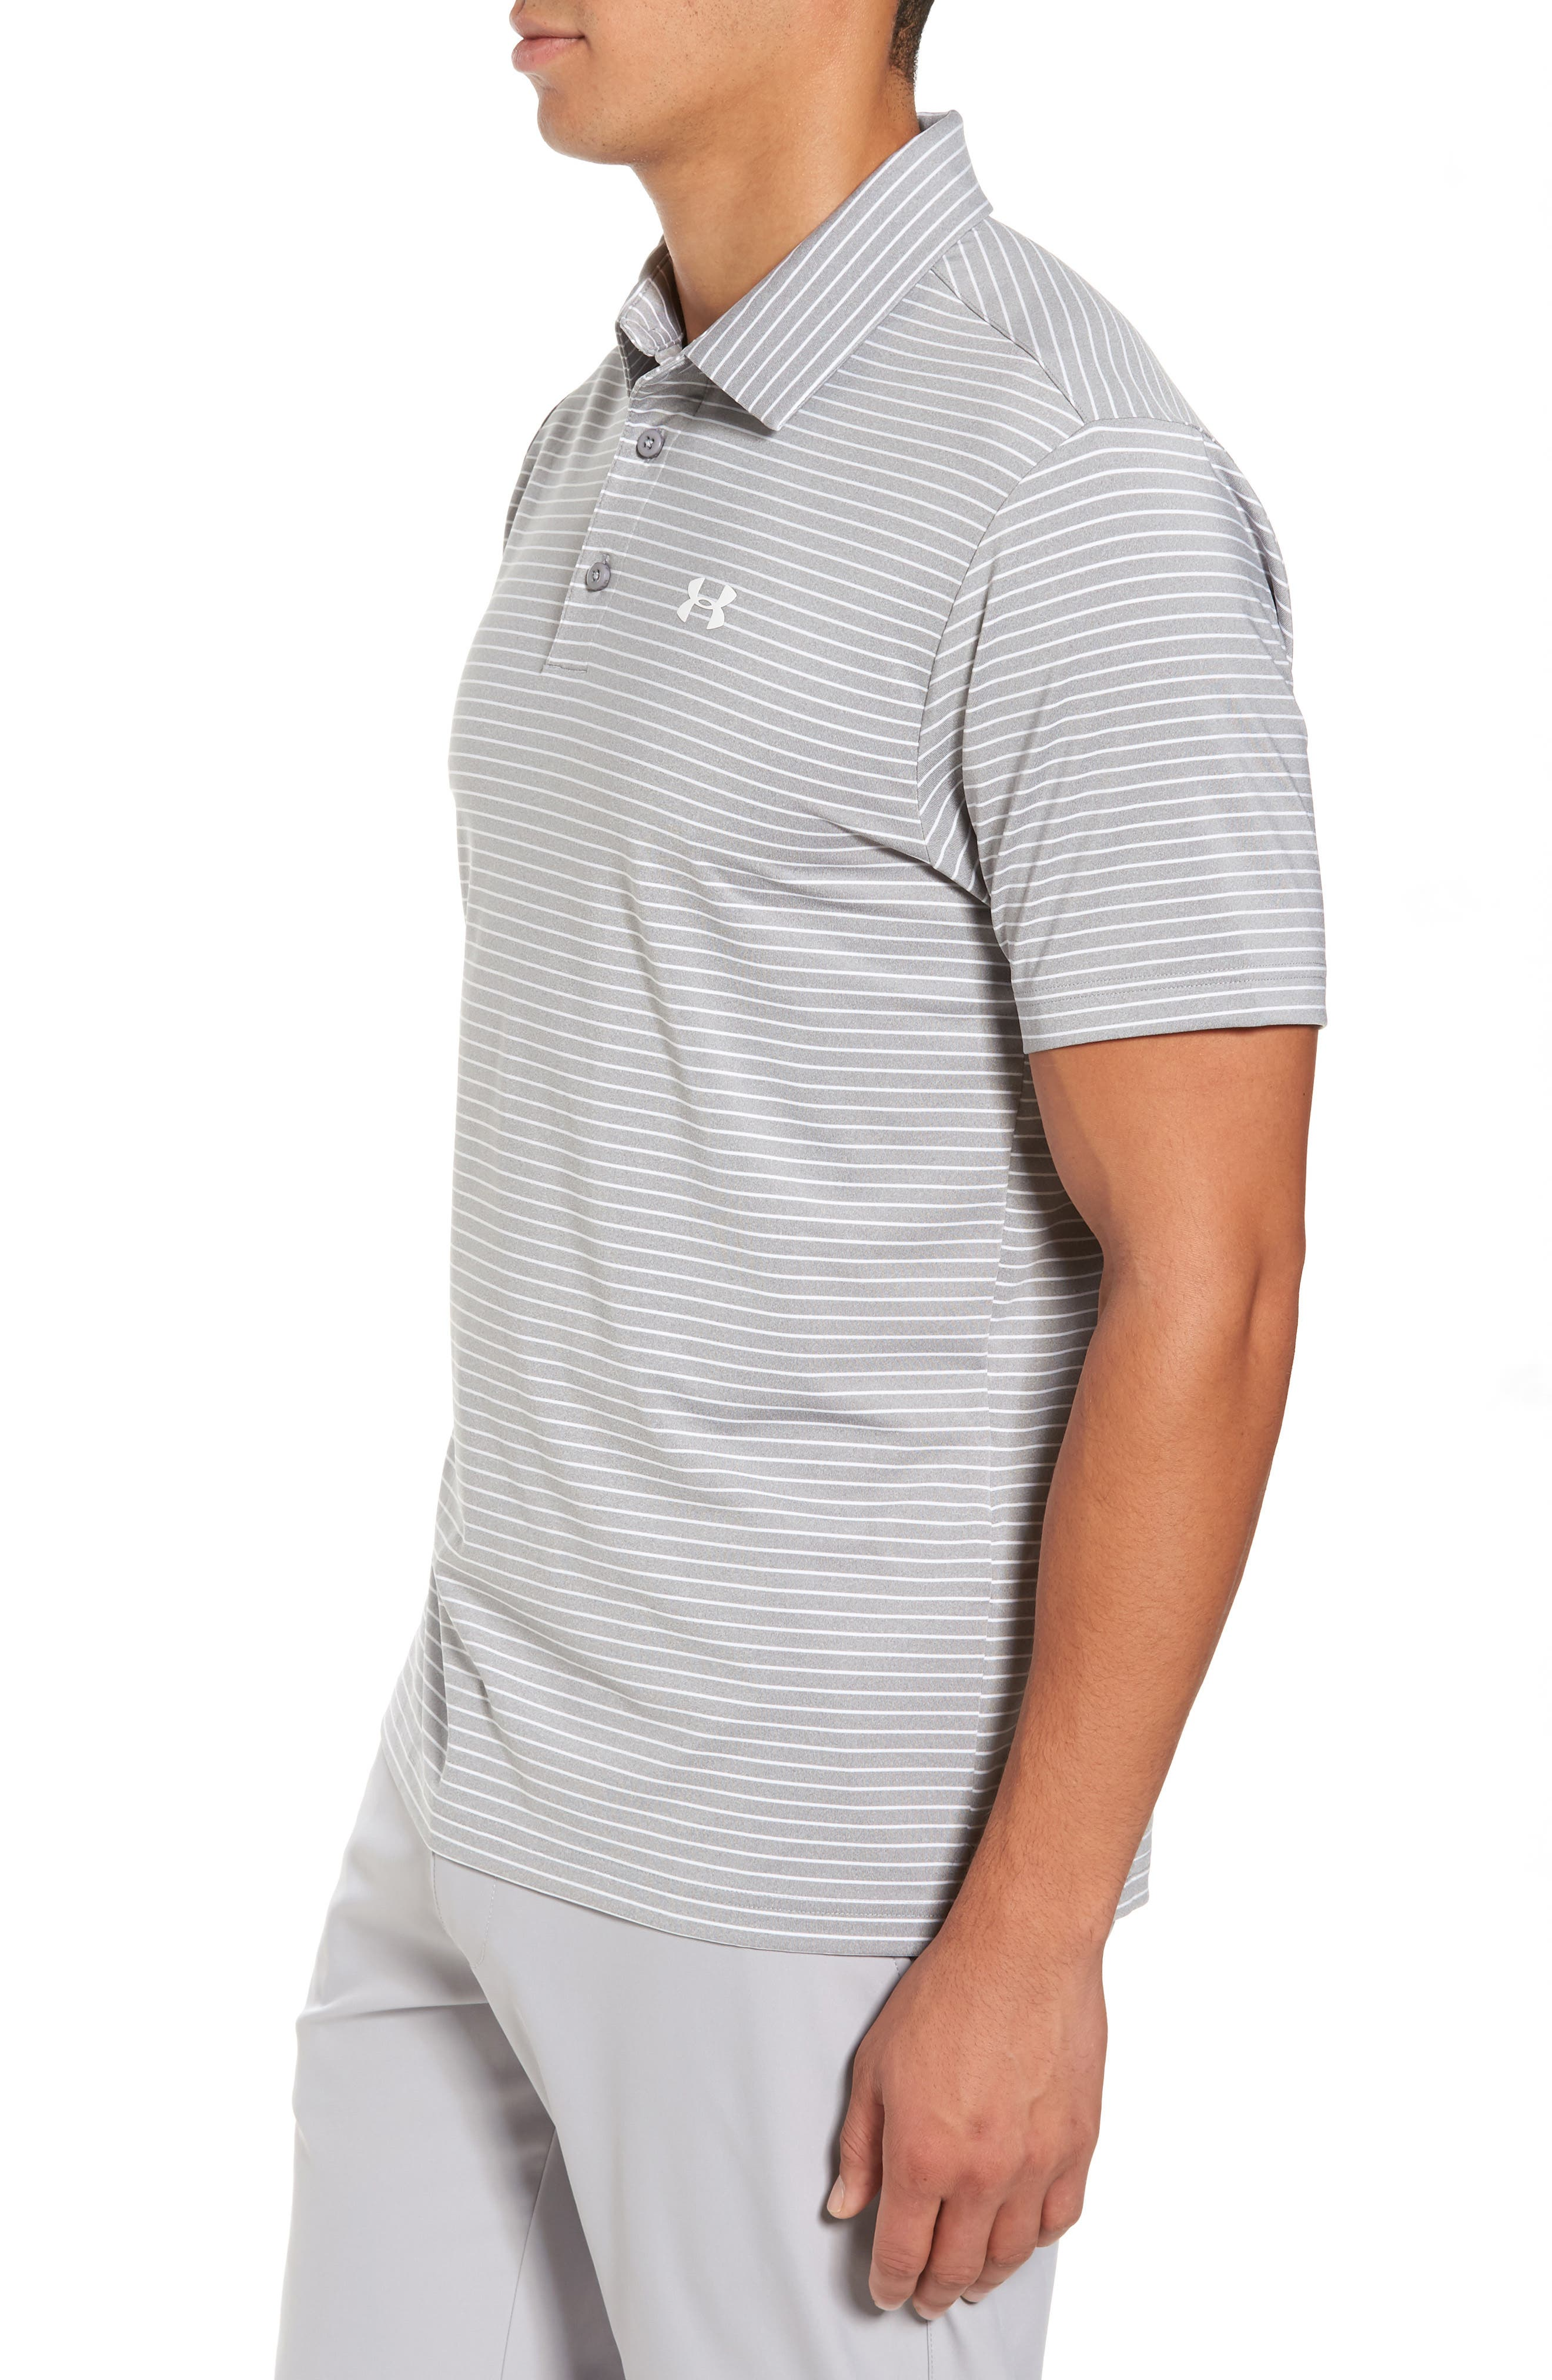 'Playoff' Loose Fit Short Sleeve Polo,                             Alternate thumbnail 3, color,                             TRUE GREY HEATHER/ WHT STRIPE